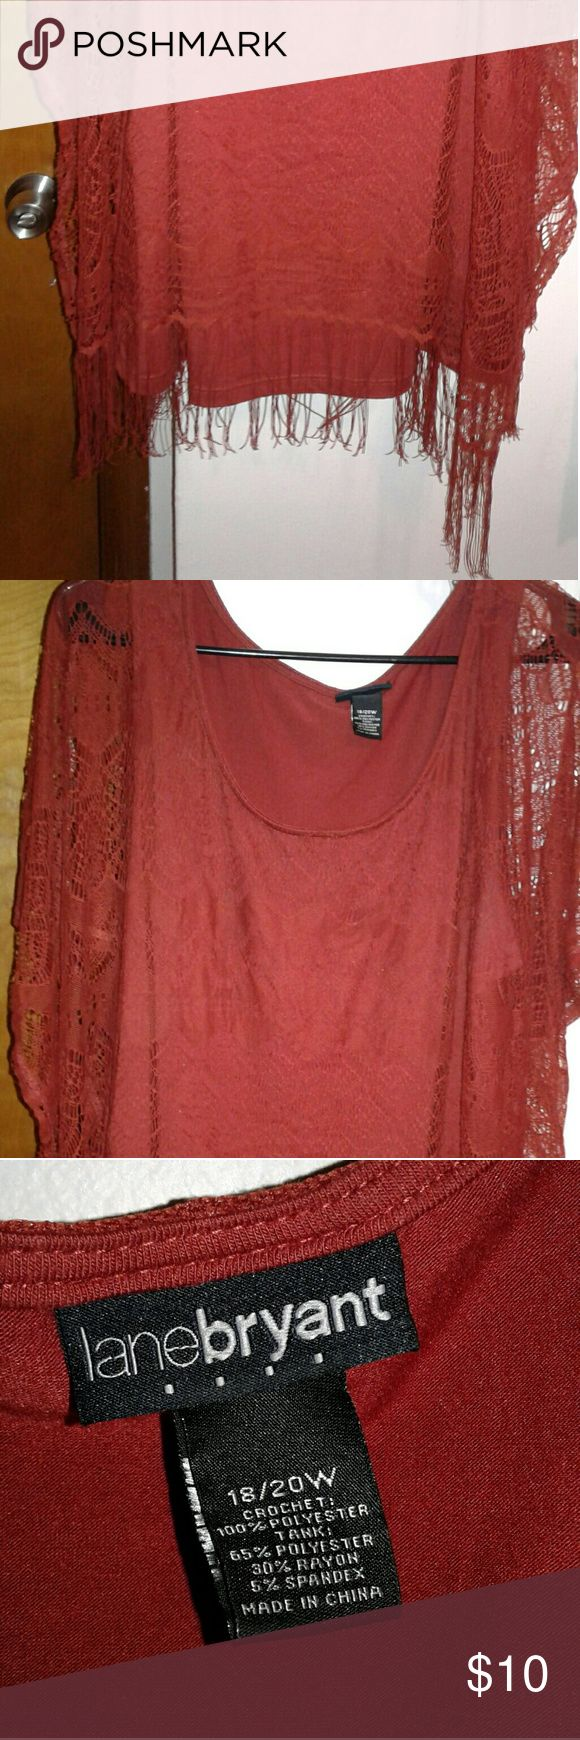 Crochet boho rust colored top Very edgy and unique, boho fringe blouse Tops Blouses